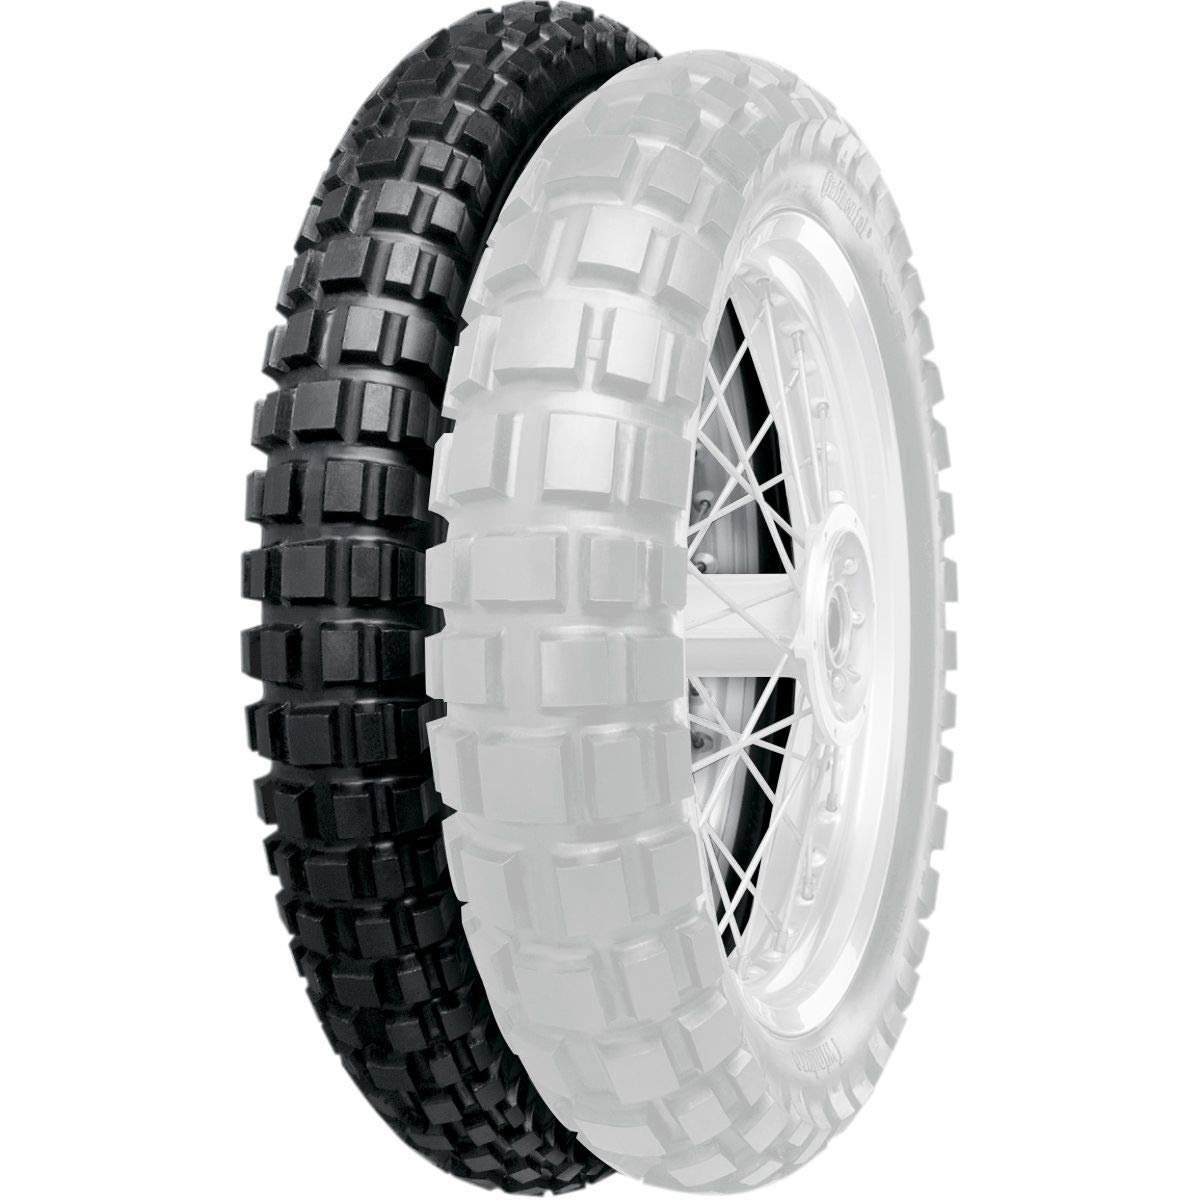 Continental TKC80 Front Tire (90/90-21 Tube Type)